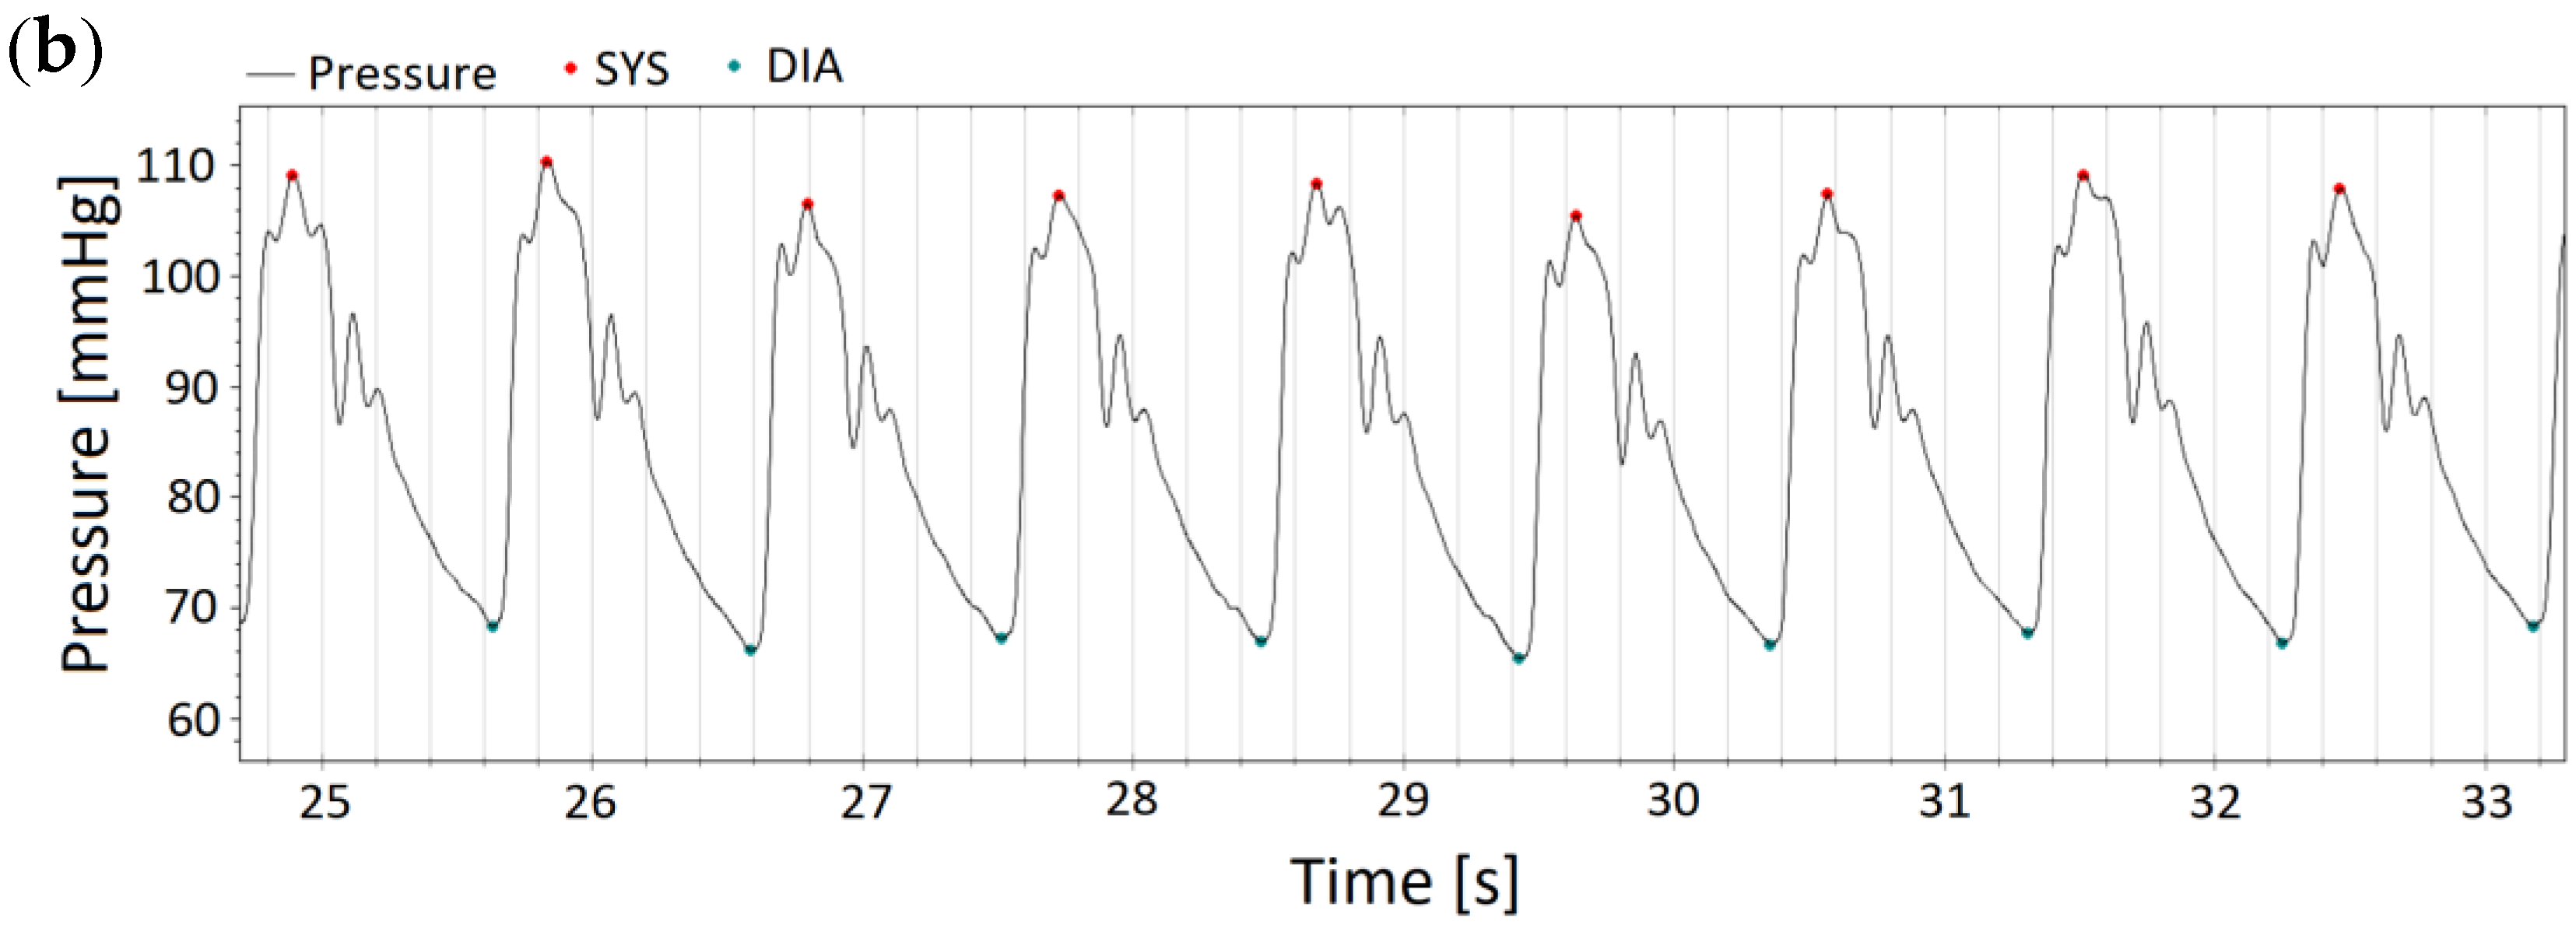 JCM   Free Full-Text   Invasive Validation of Antares, a New